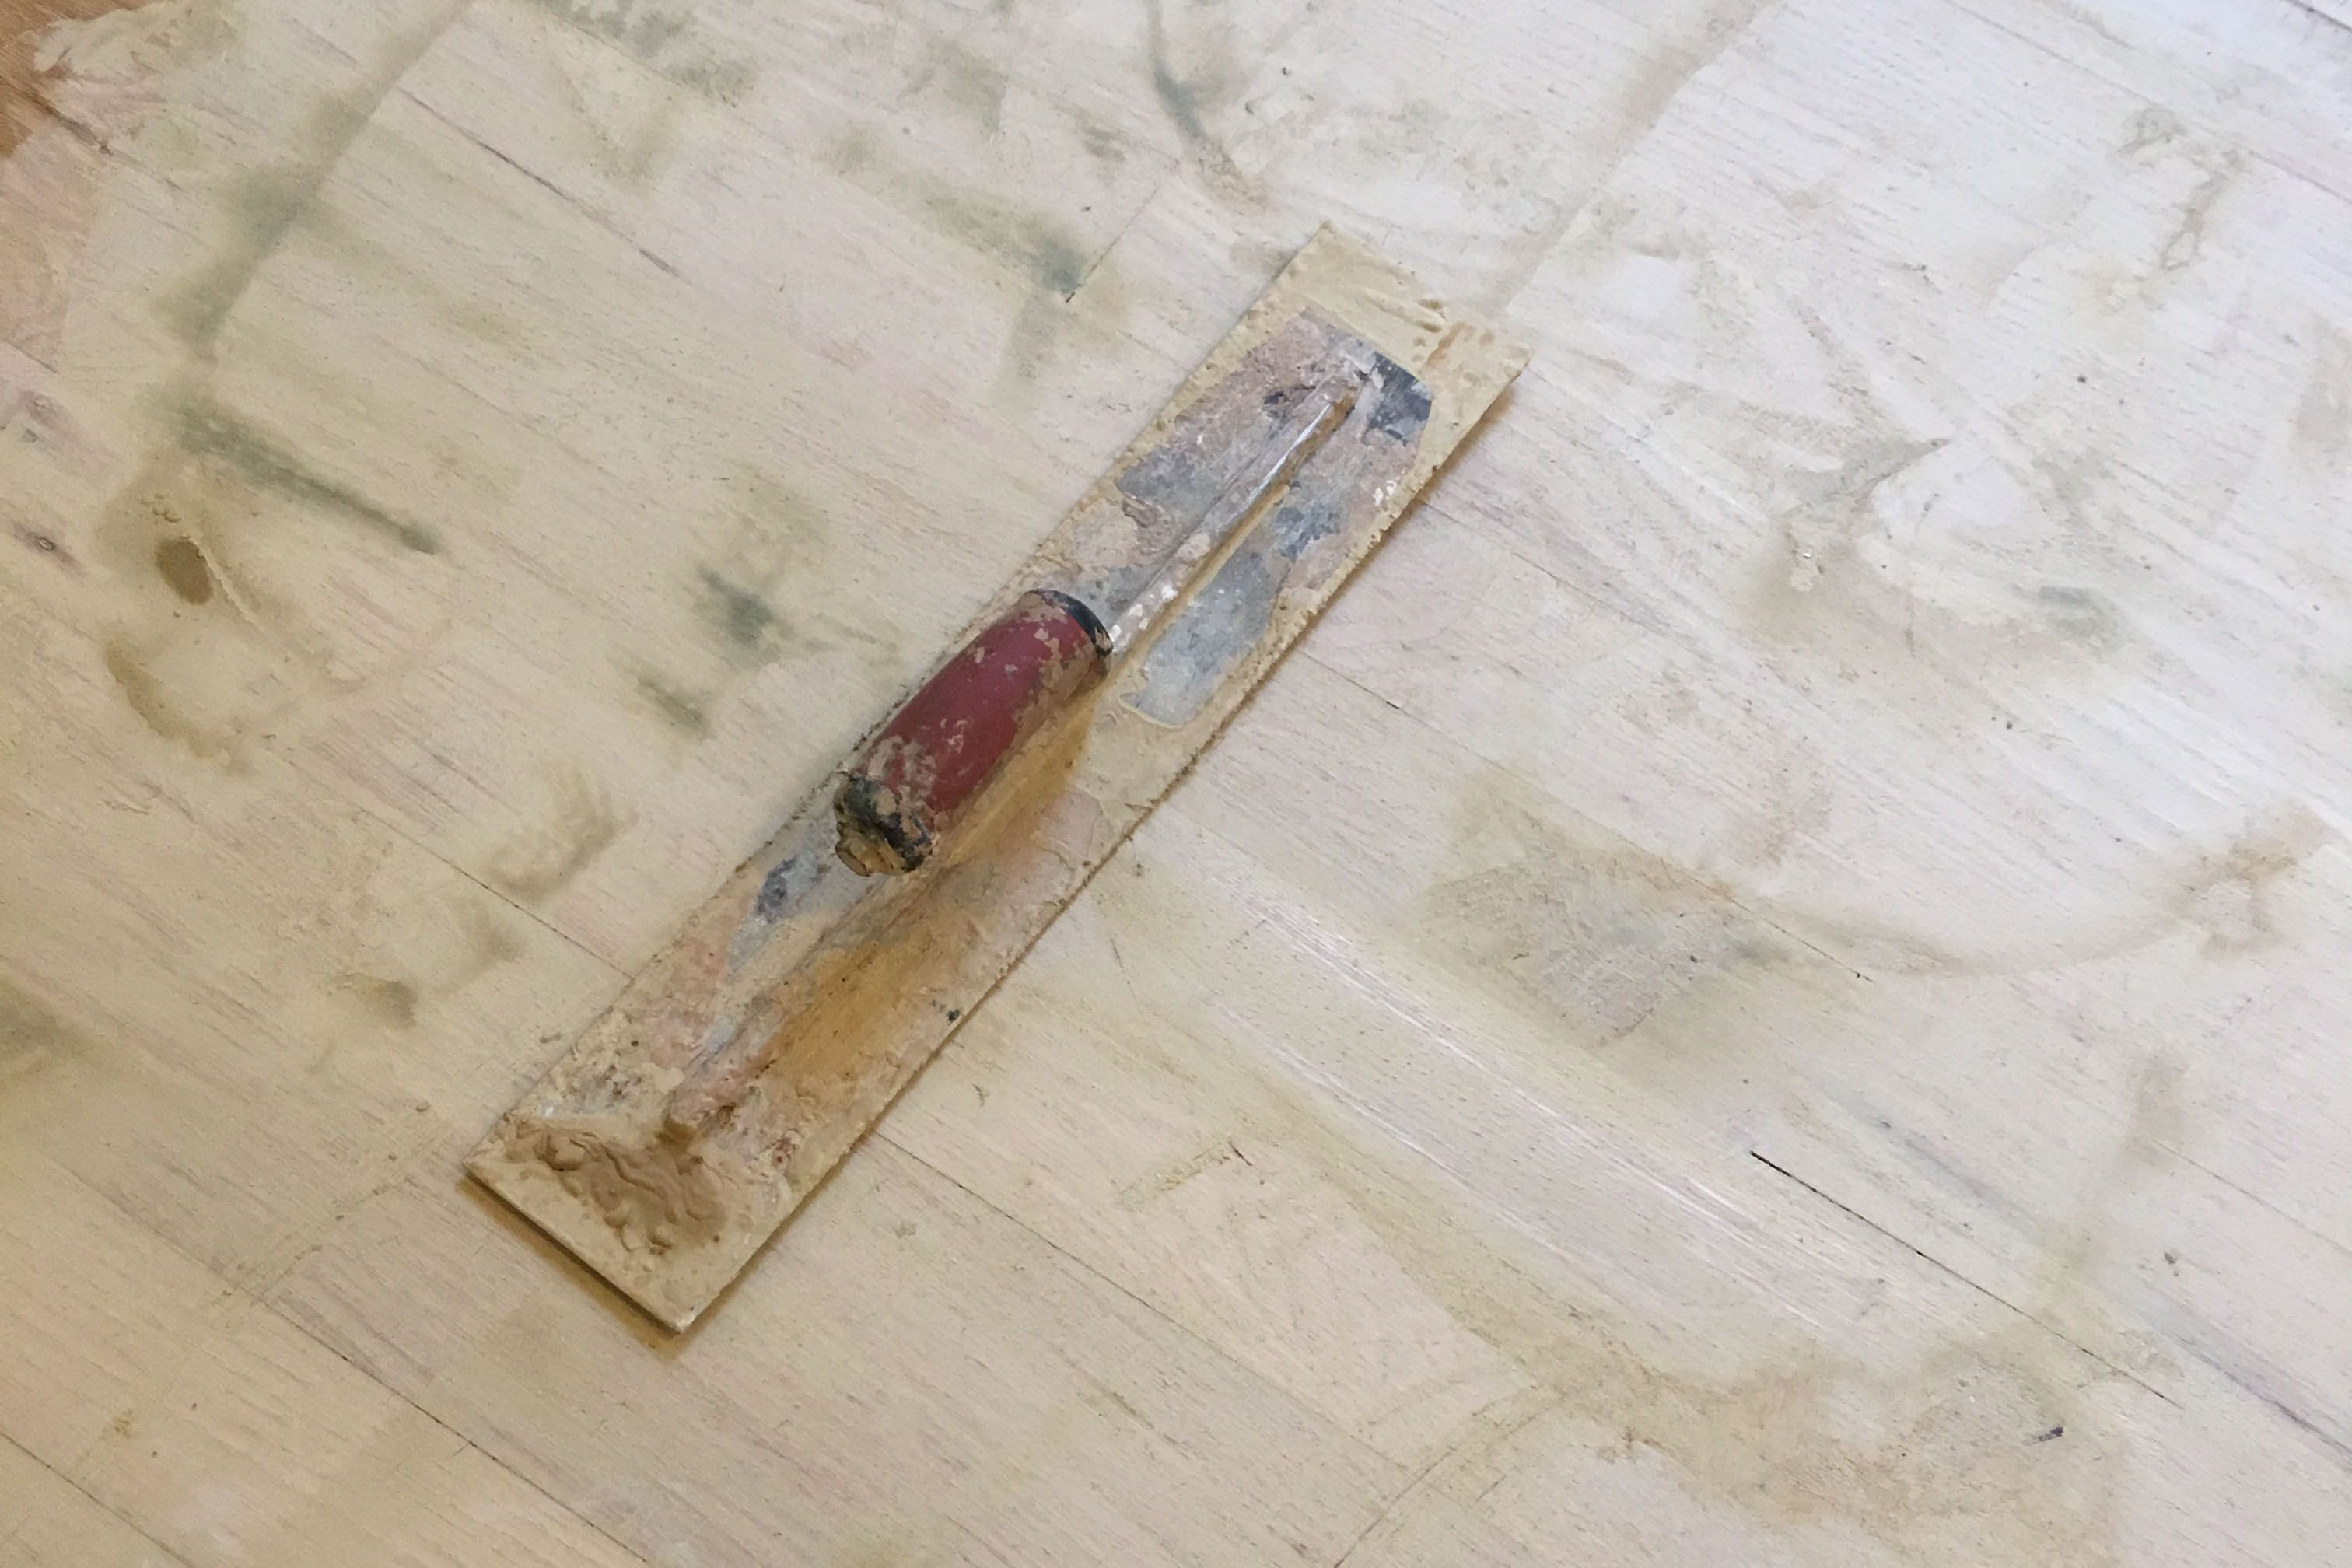 how much does it cost to refinish hardwood floors canada of 7 things to know before you refinish hardwood floors within trough hardwood floor manhattan avenue via smallspaces about com 579138783df78c173490f8a5